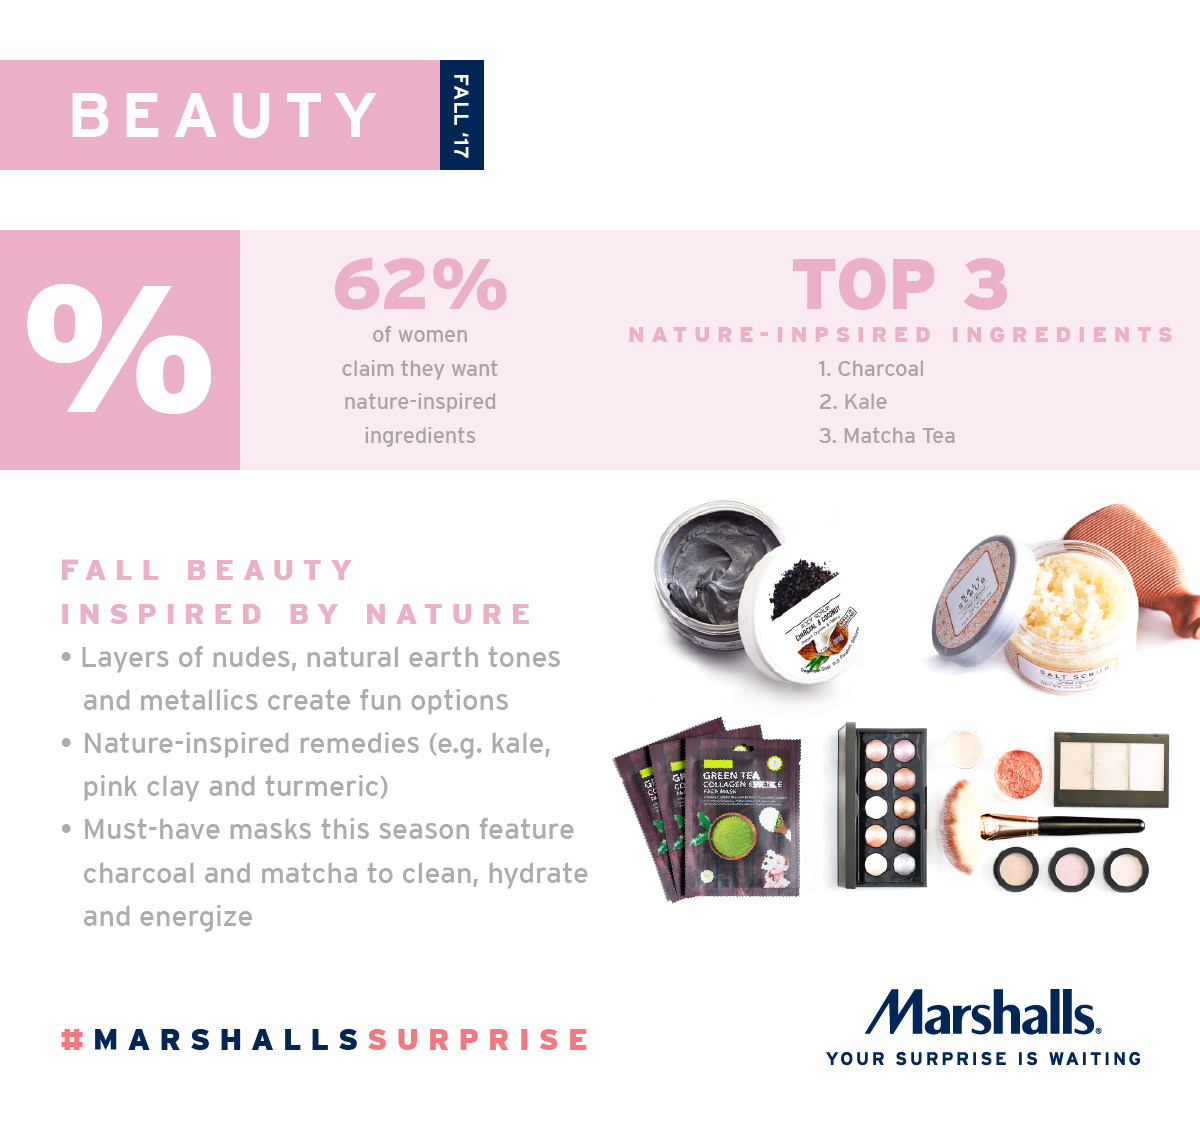 Fall 2017 beauty is inspired by nature with natural looks and remedies from the Earth, according to the Marshalls Fall 2017 trend report.